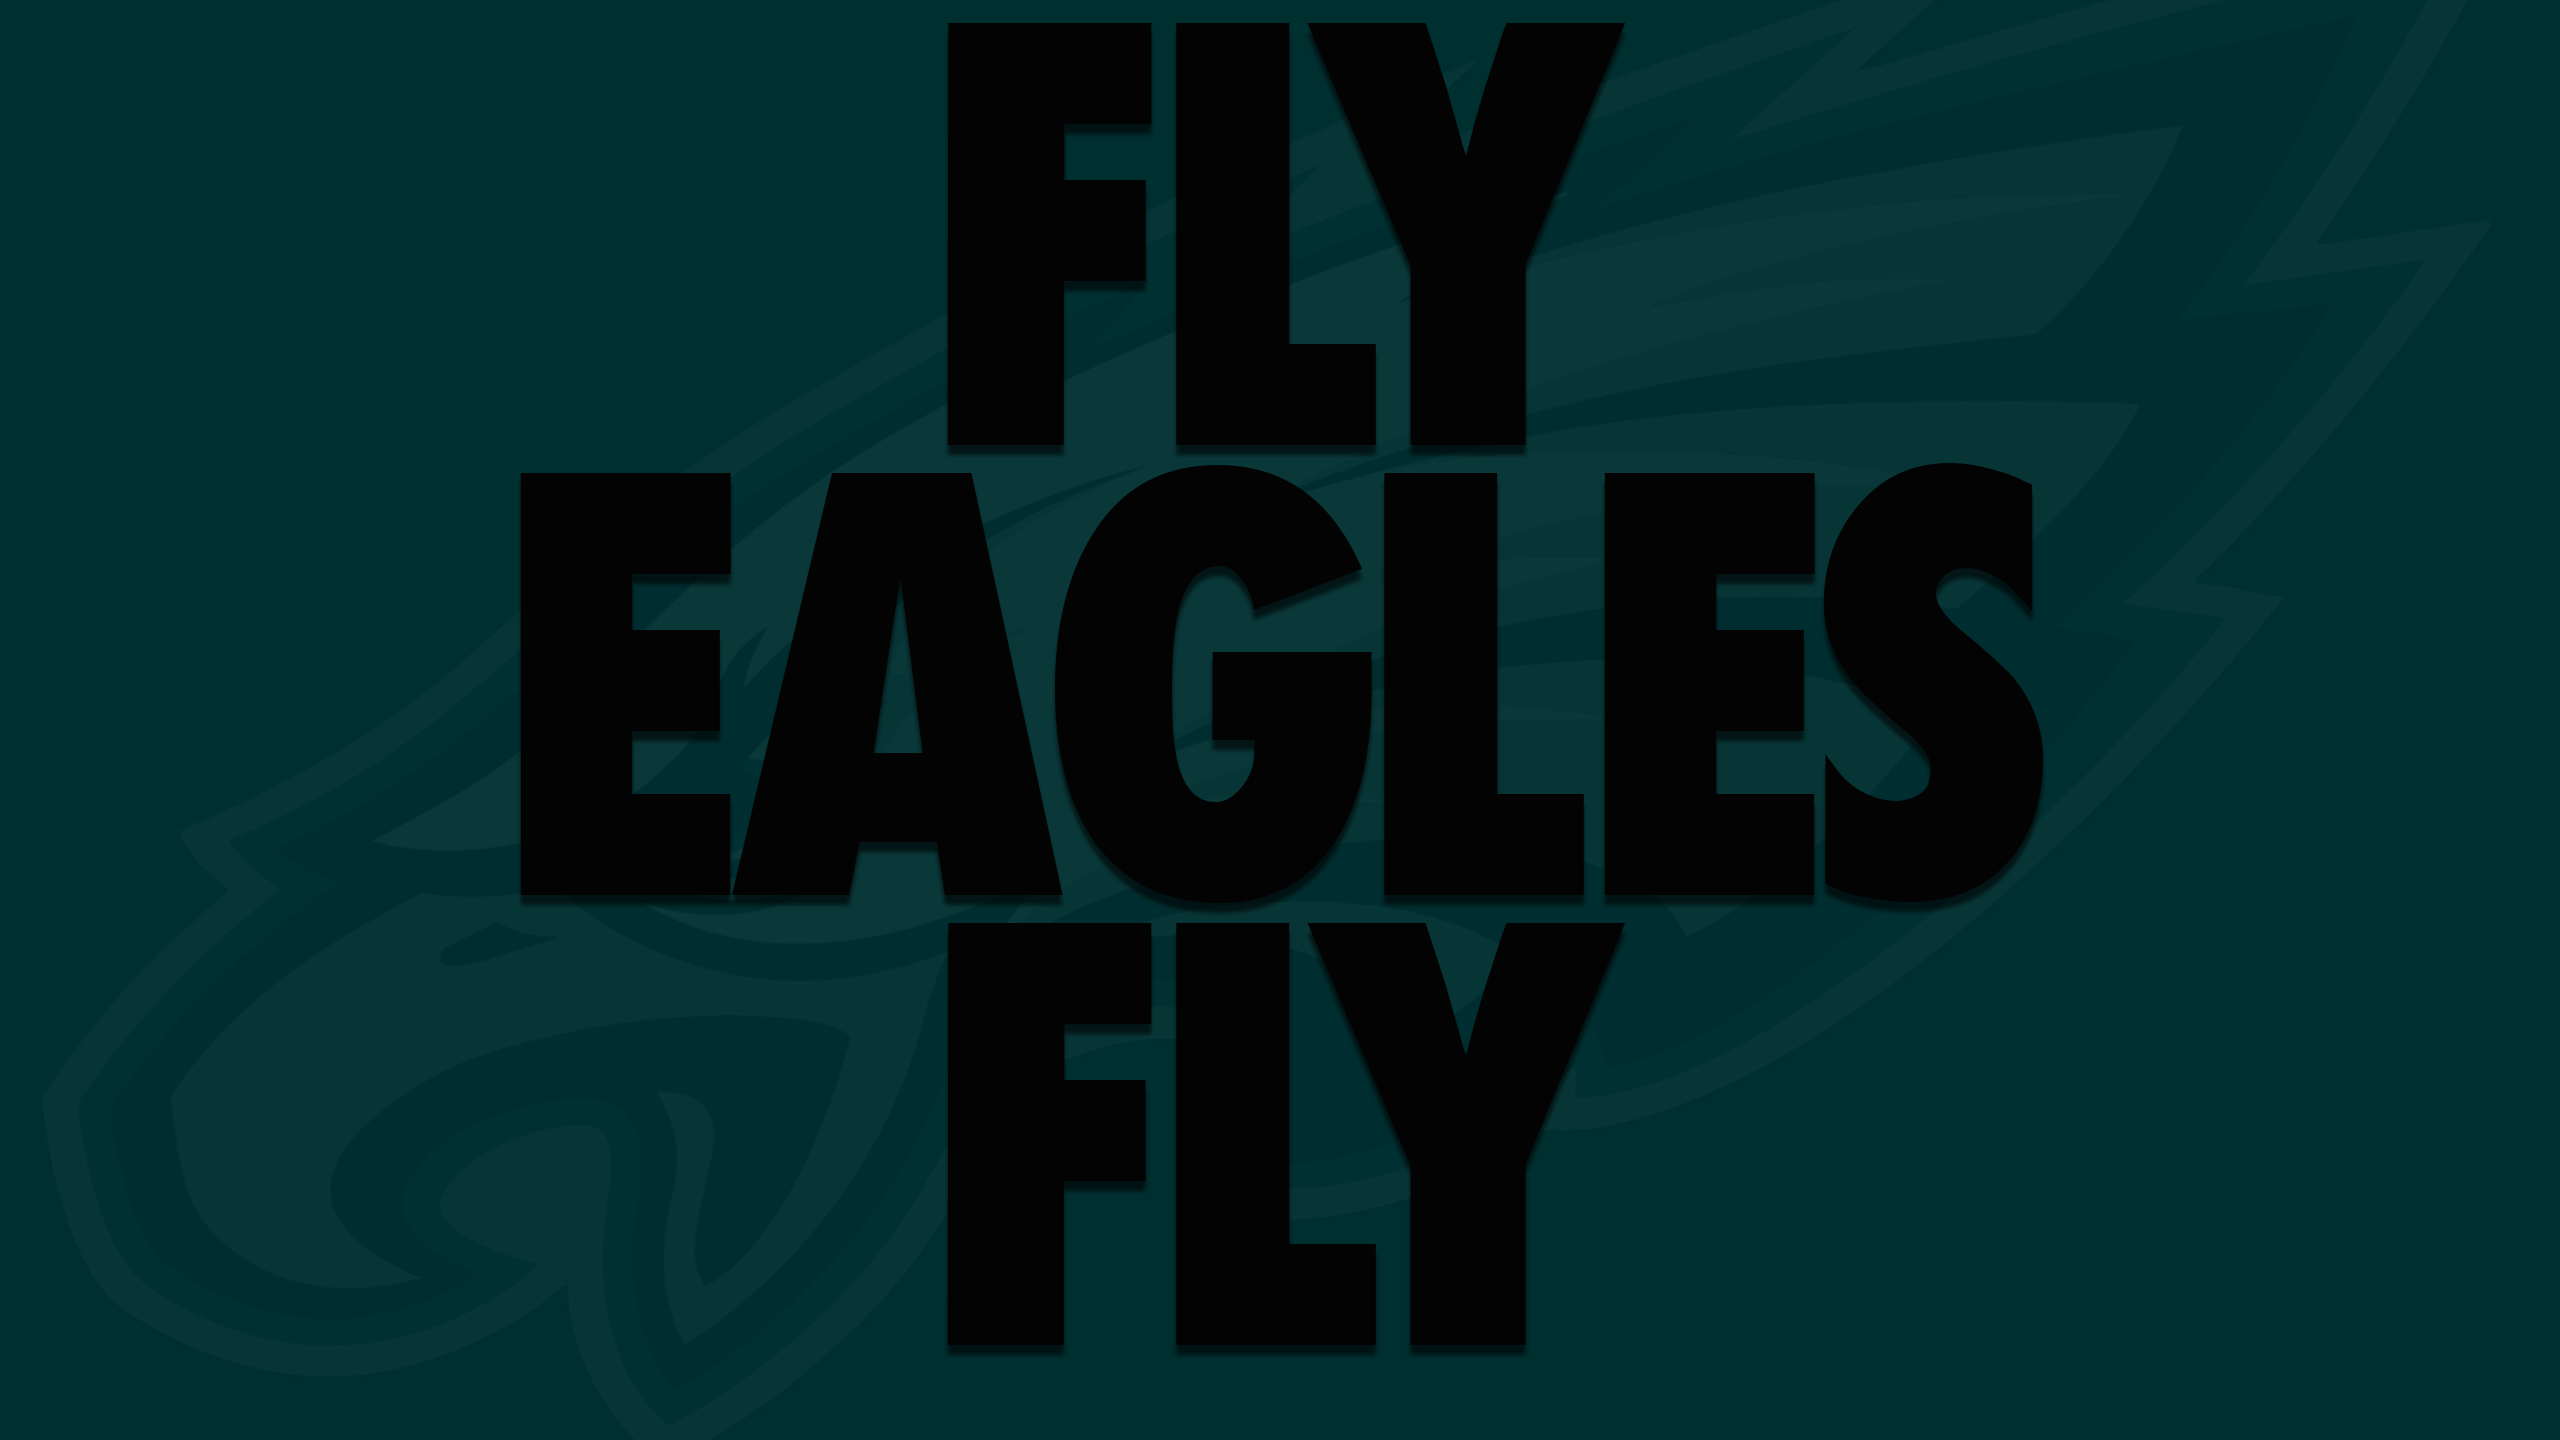 Philadelphia Eagles Wallpaper Images 8